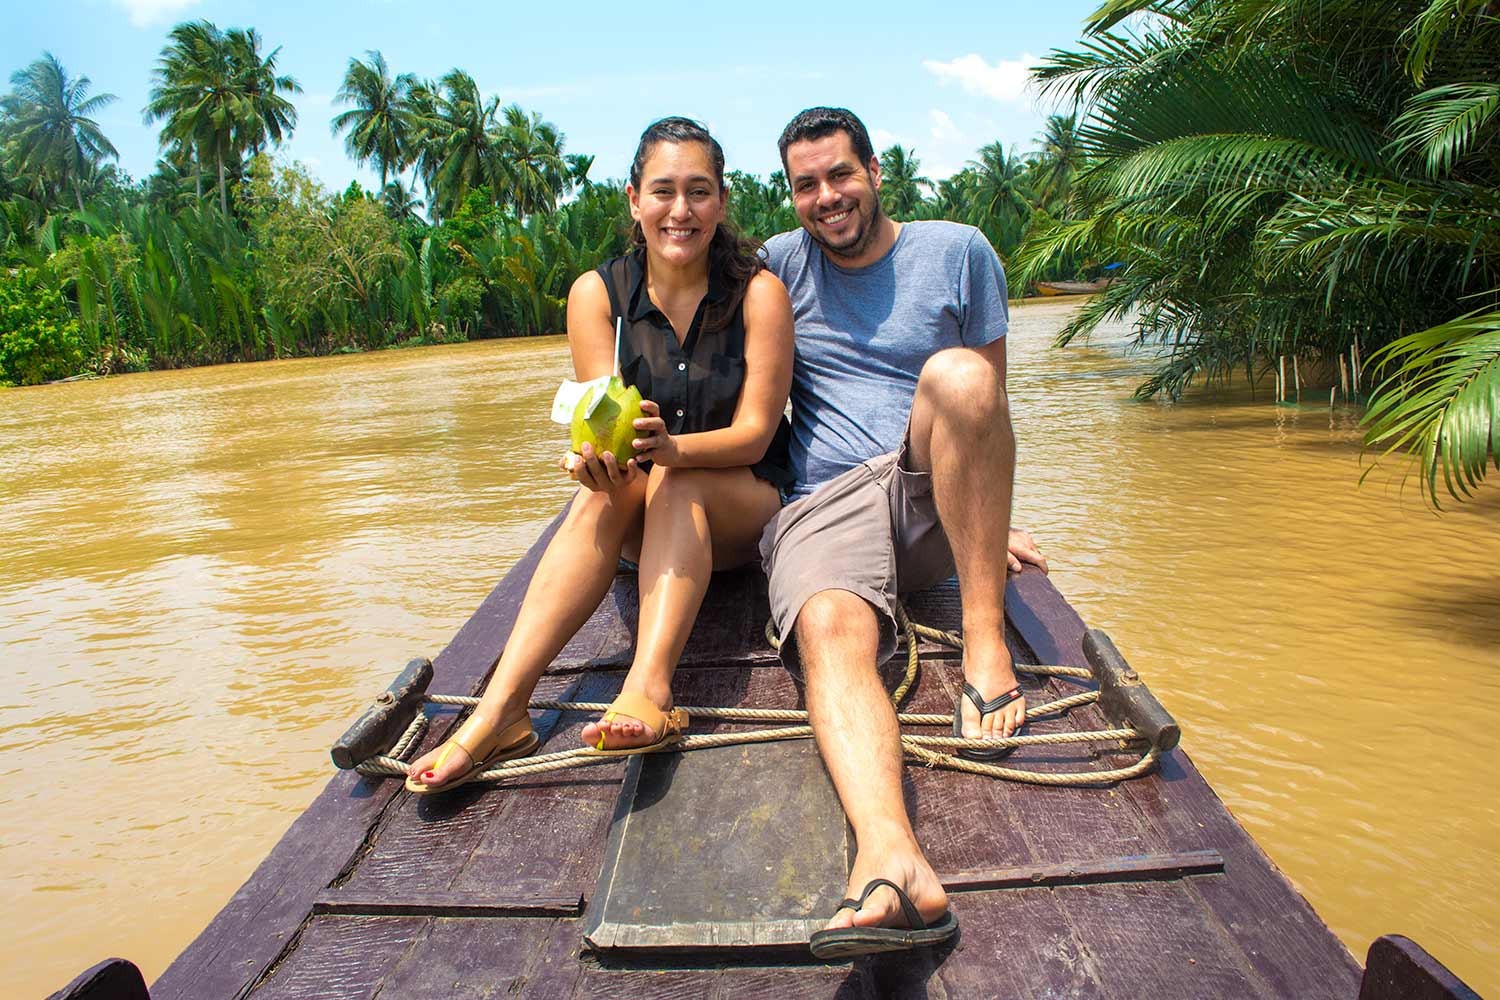 Drinking fresh coconut on the waters of the Mekong Delta.